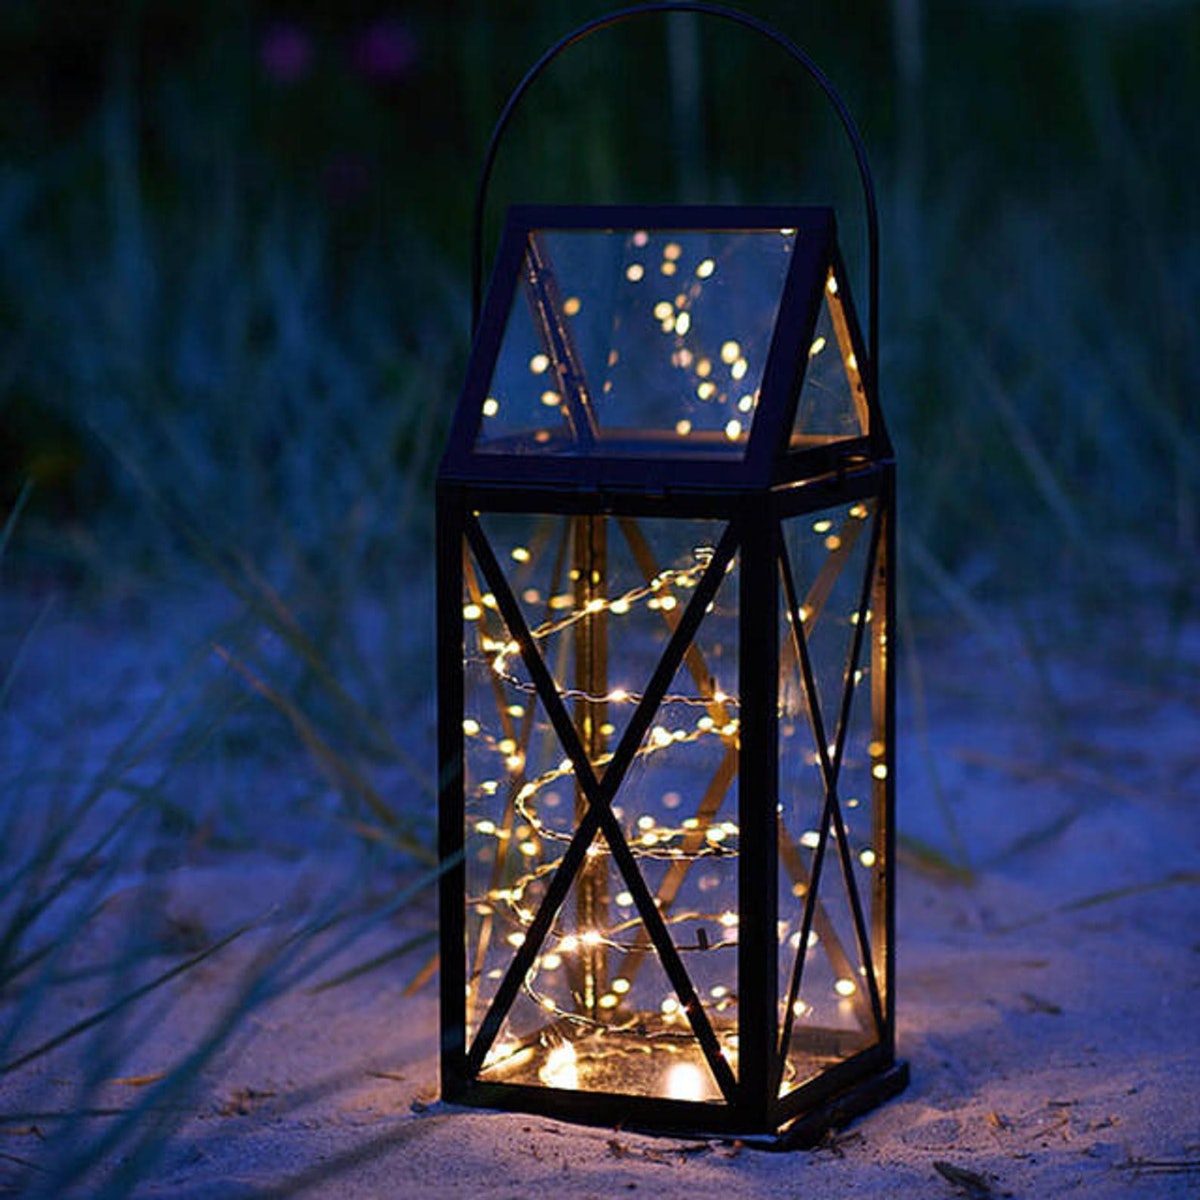 100 LED Battery Operated Fairy Lights